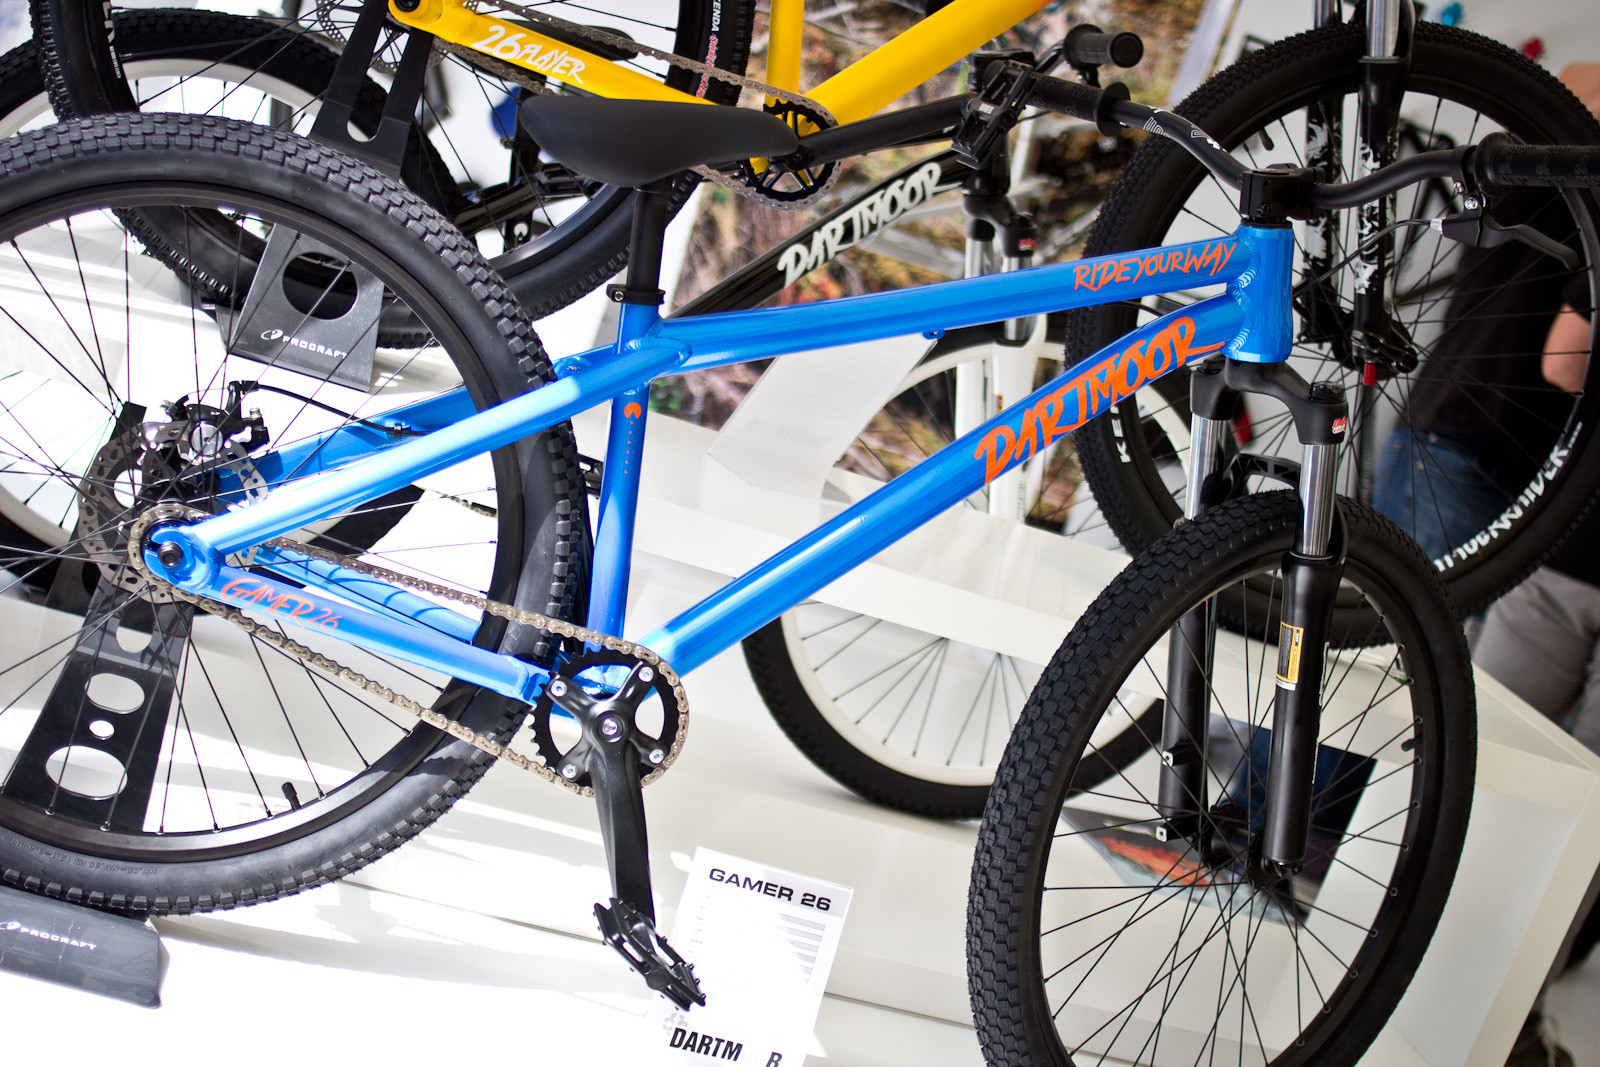 2014 Dartmoor Gamer 26 - 2014 Dirt Jump Bikes at Eurobike 2013 - Mountain Biking Pictures - Vital MTB